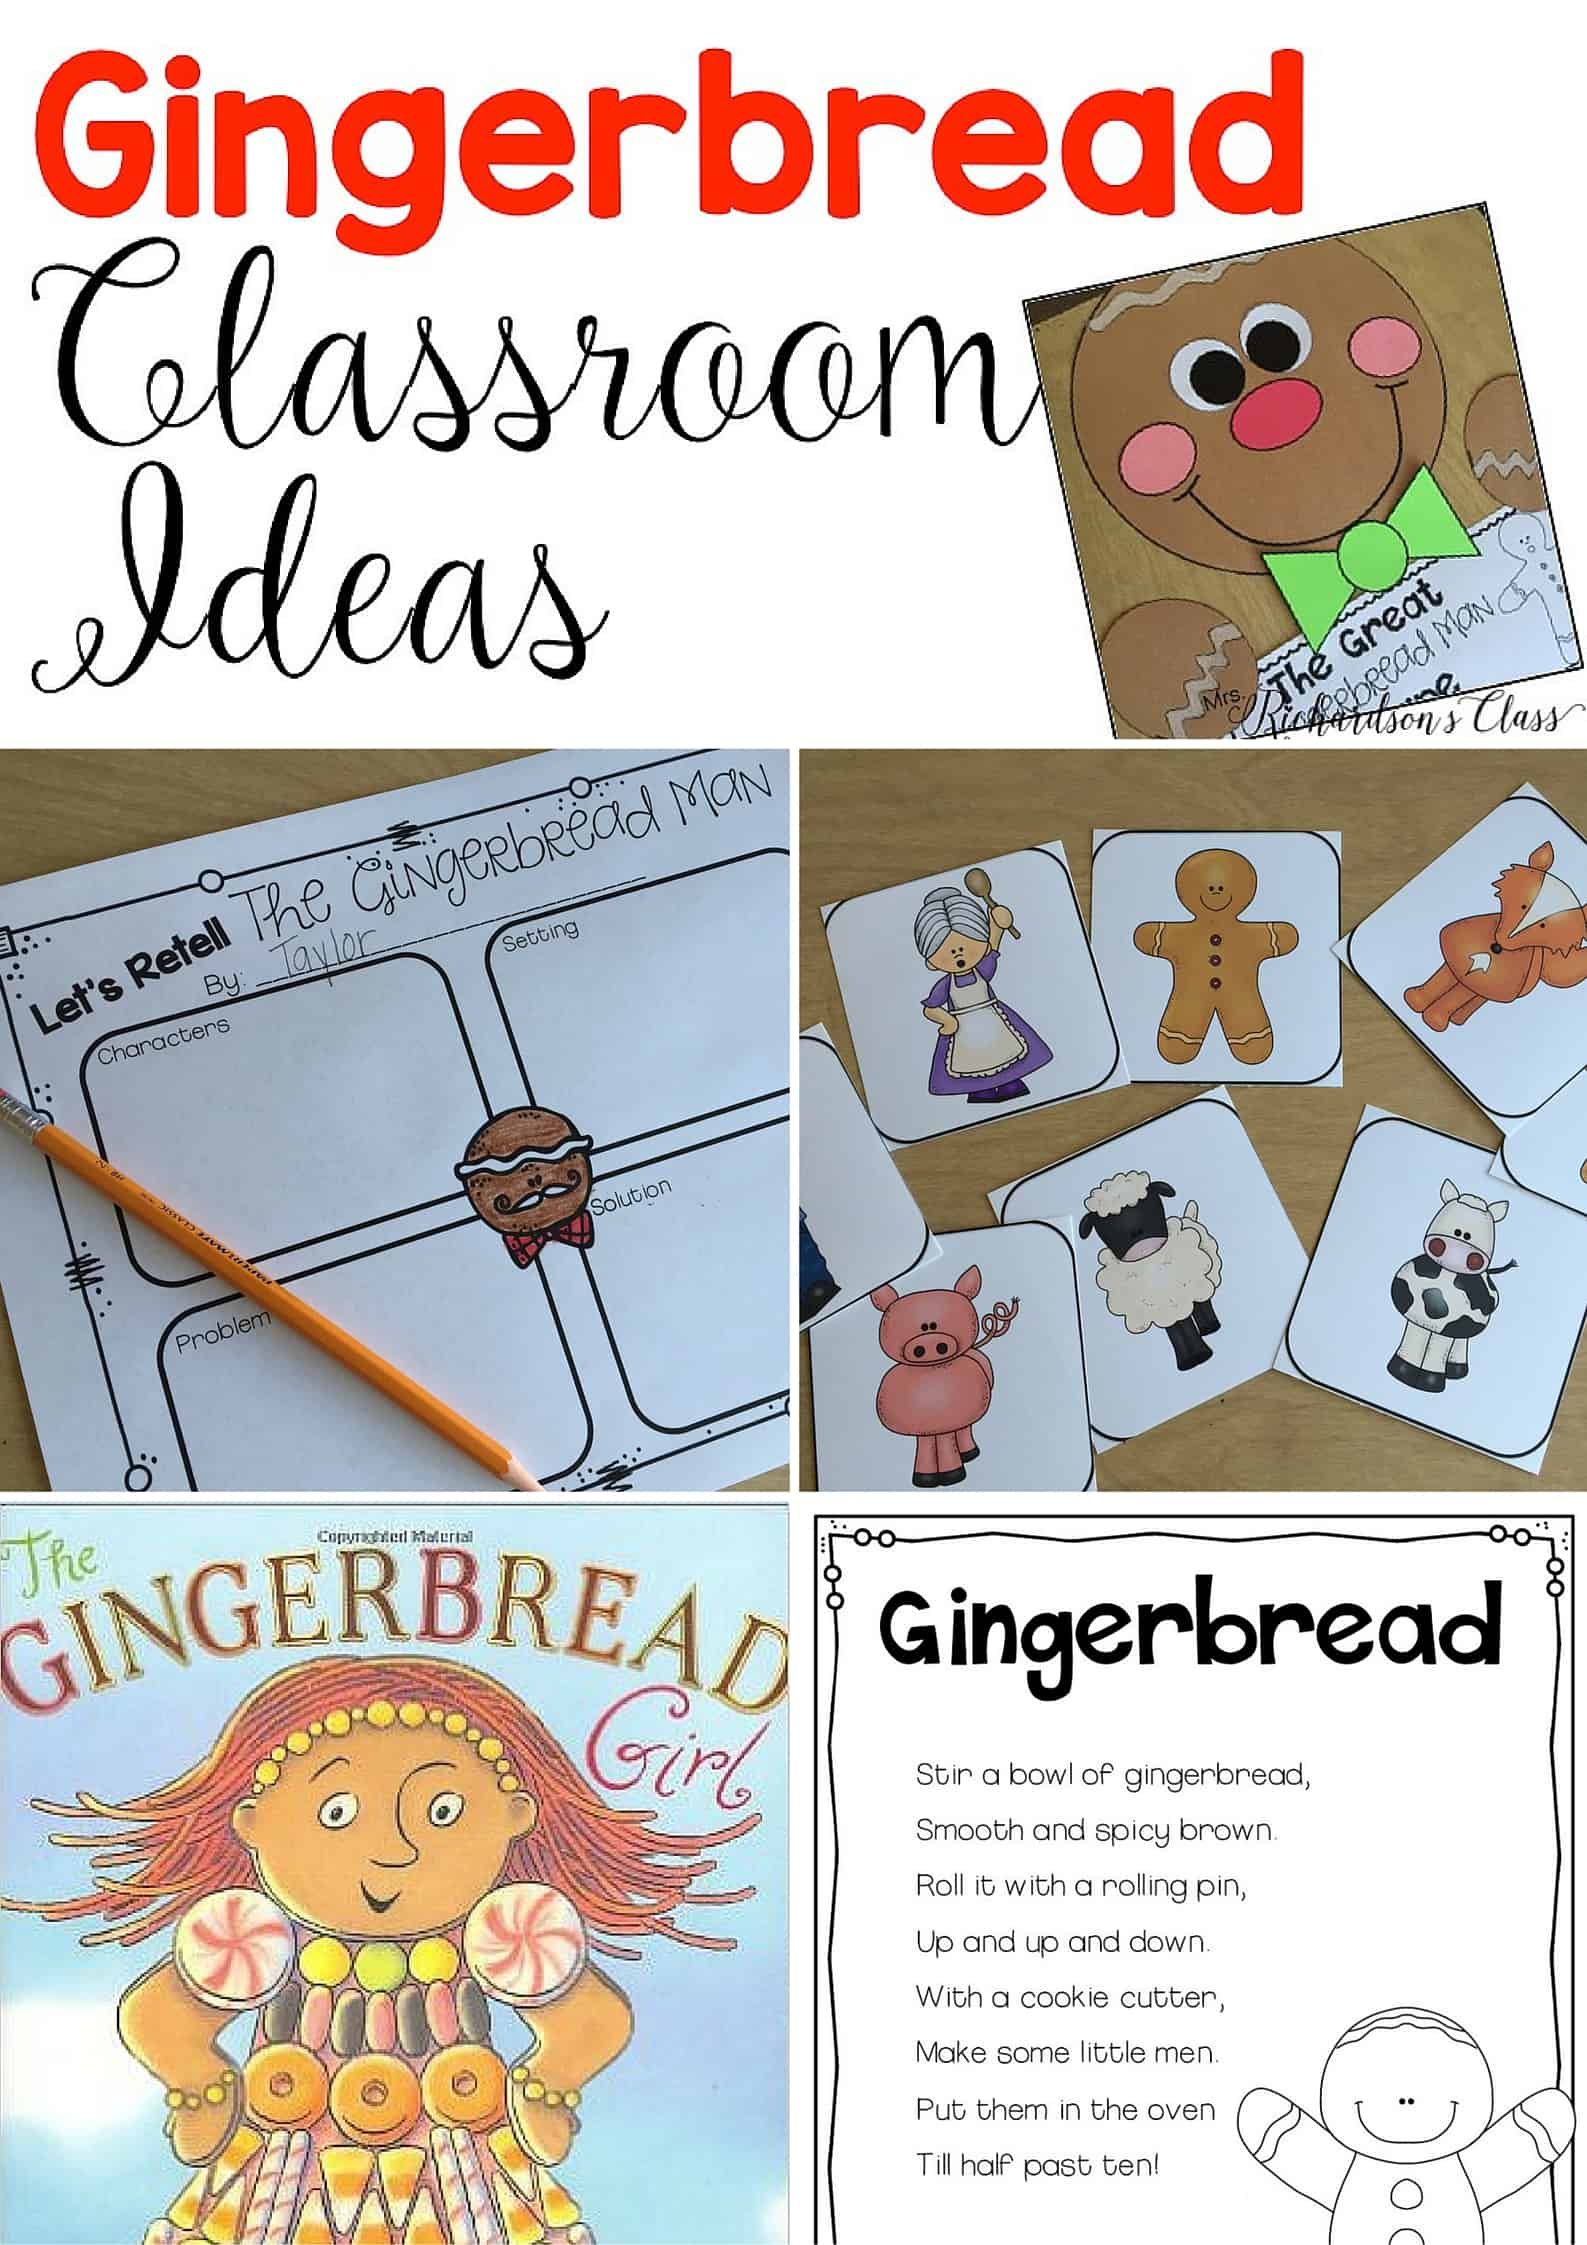 Gingerbread Classroom Ideas that are perfect for the kindergarten and first grade classrooms. Many engaging activities for any gingerbread book that can be integrated into reading and reading! Plus a FREEBIE! #gingerbreadactivities #kindergarten #firstgrade #gingerbreadman #book #FREE